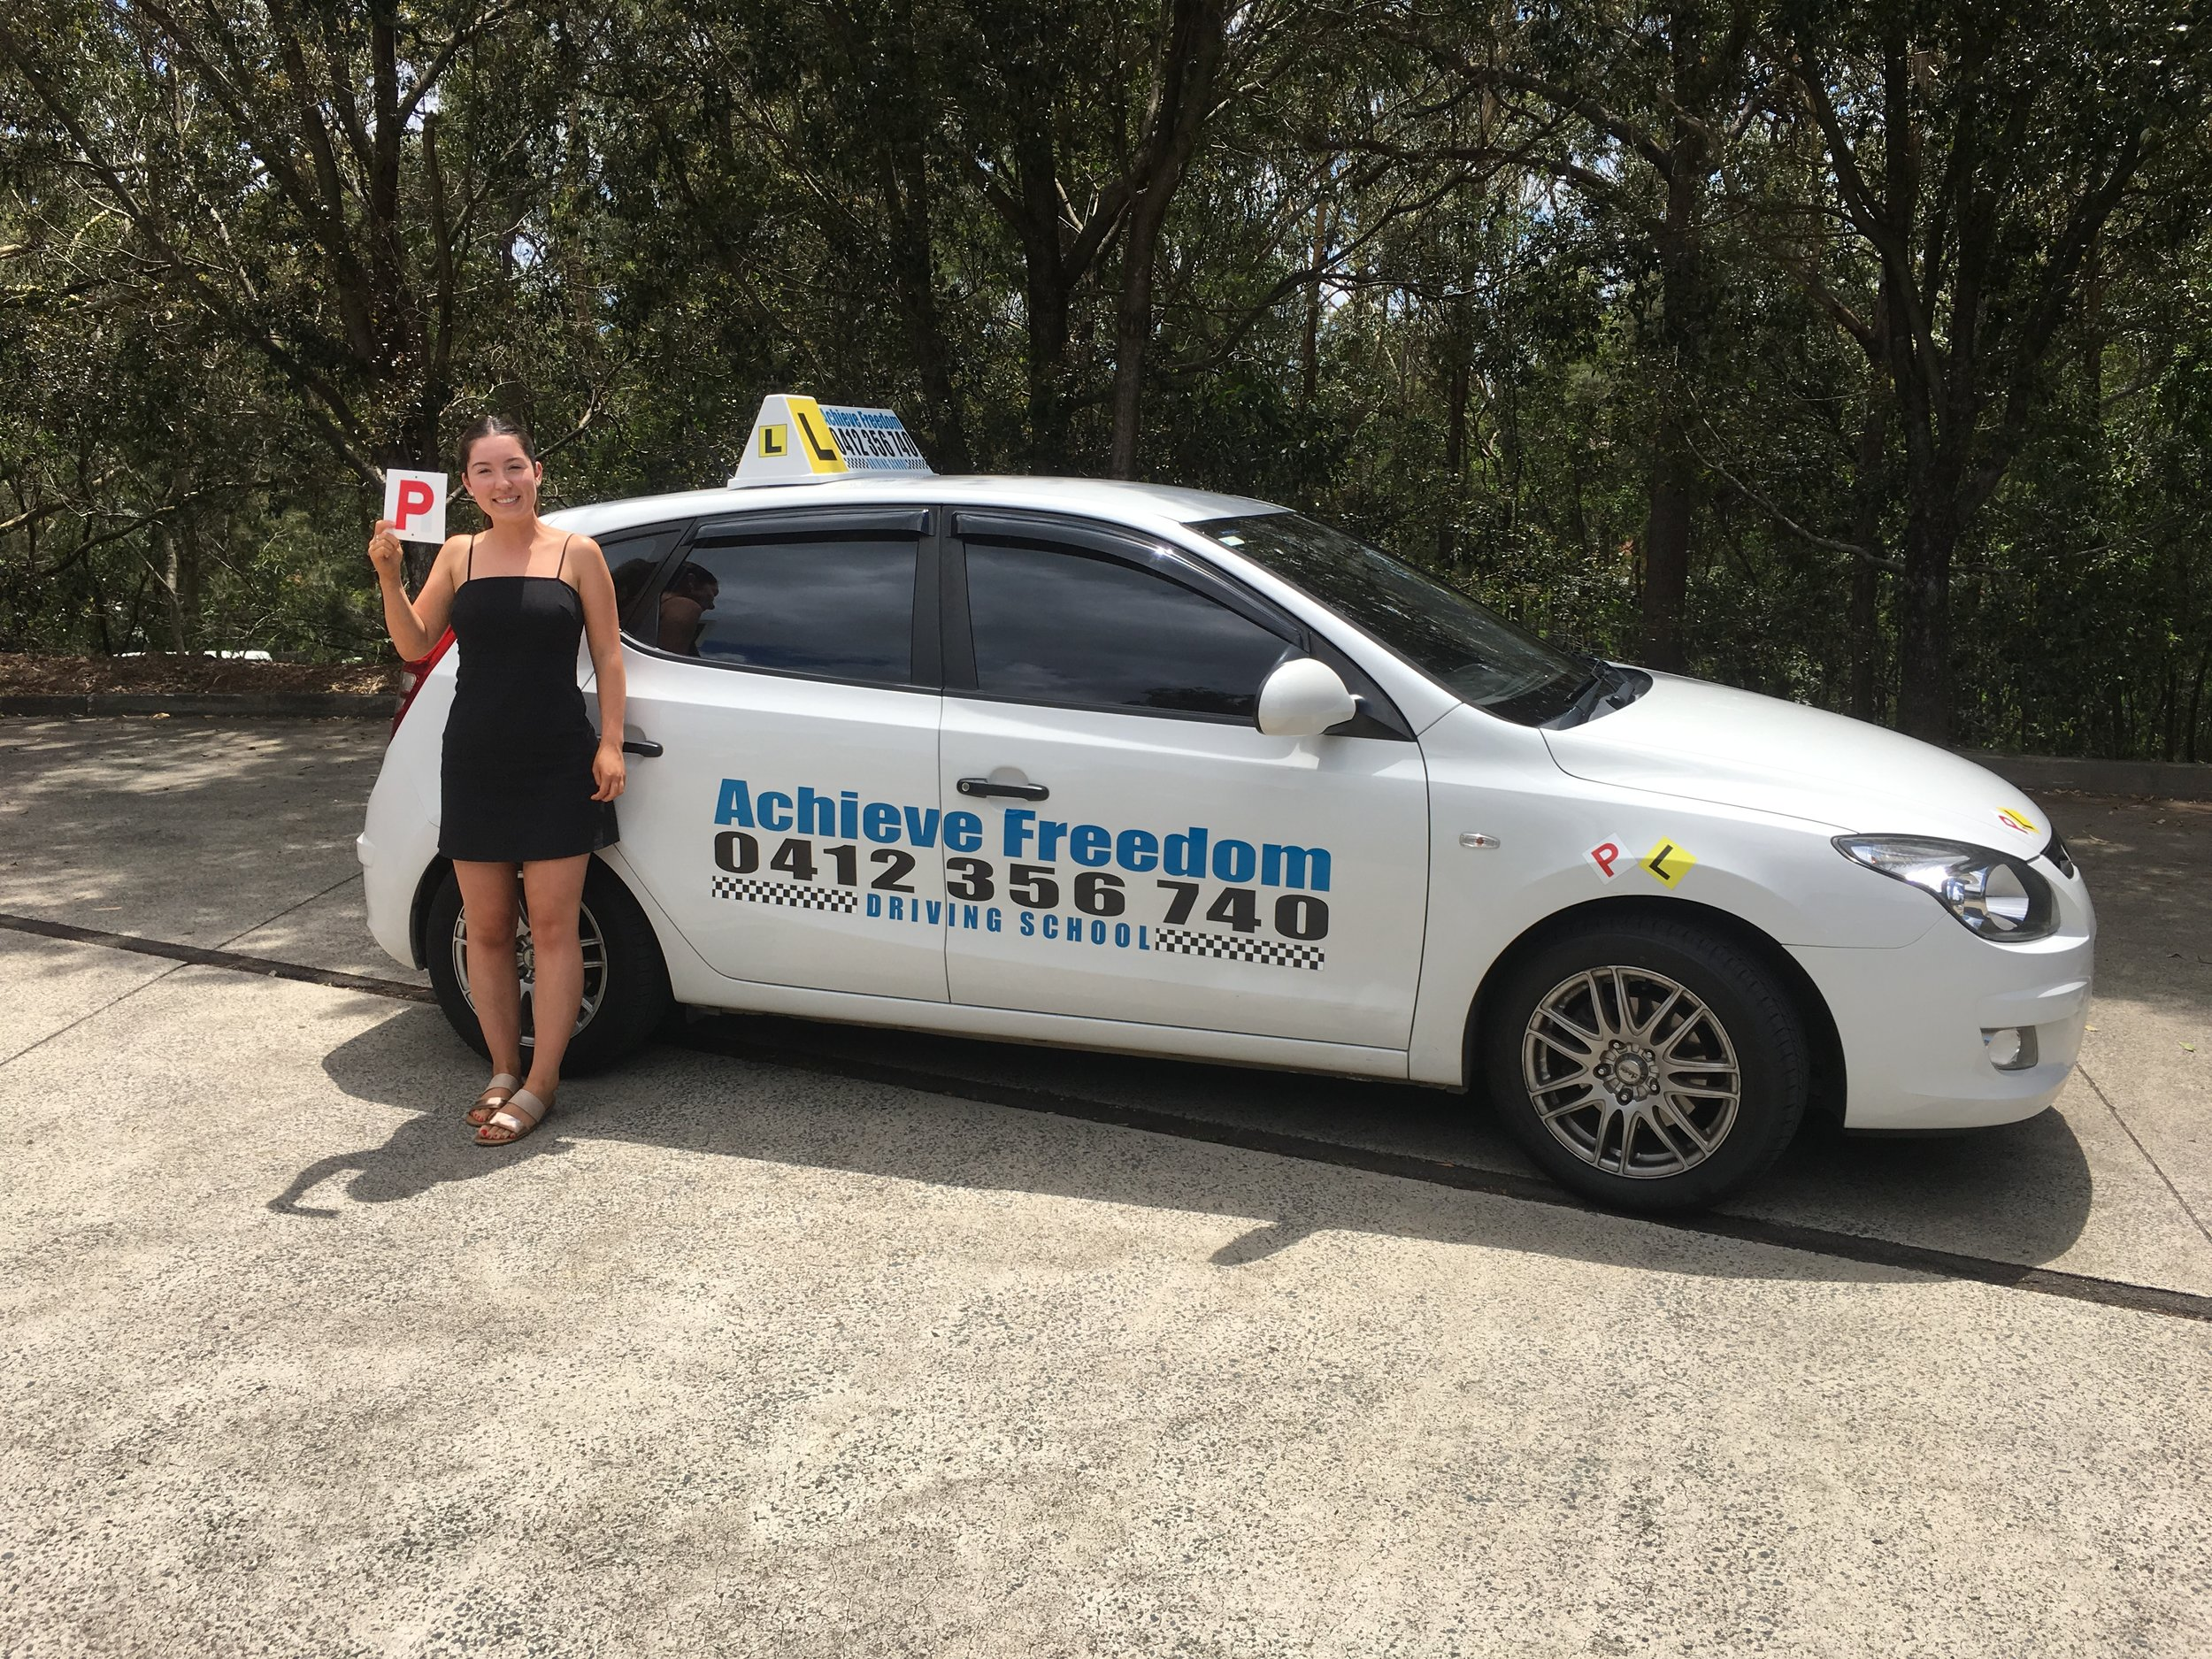 Charli Brayshaw passed her driving test at the Southport Transport and Main roads even though she was super nervous, the calm conversation we had before she went on her driving test on the Gold Coast,straight after she told me she felt relaxed and calm as she left the test centre due to my words of wisdom.